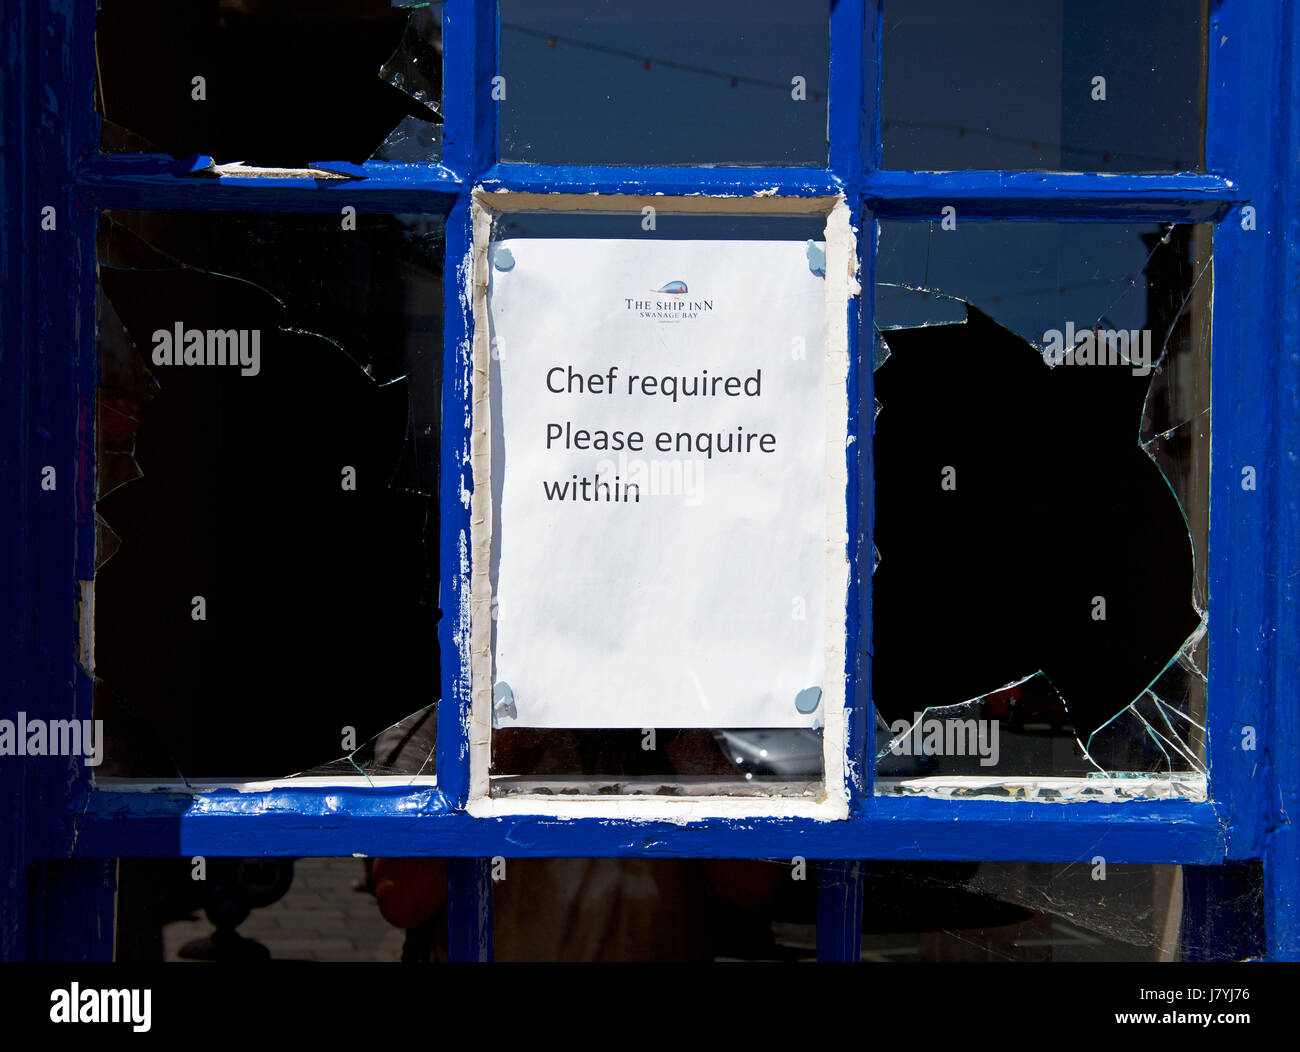 Sign on broken window: chef required, England UK - Stock Image